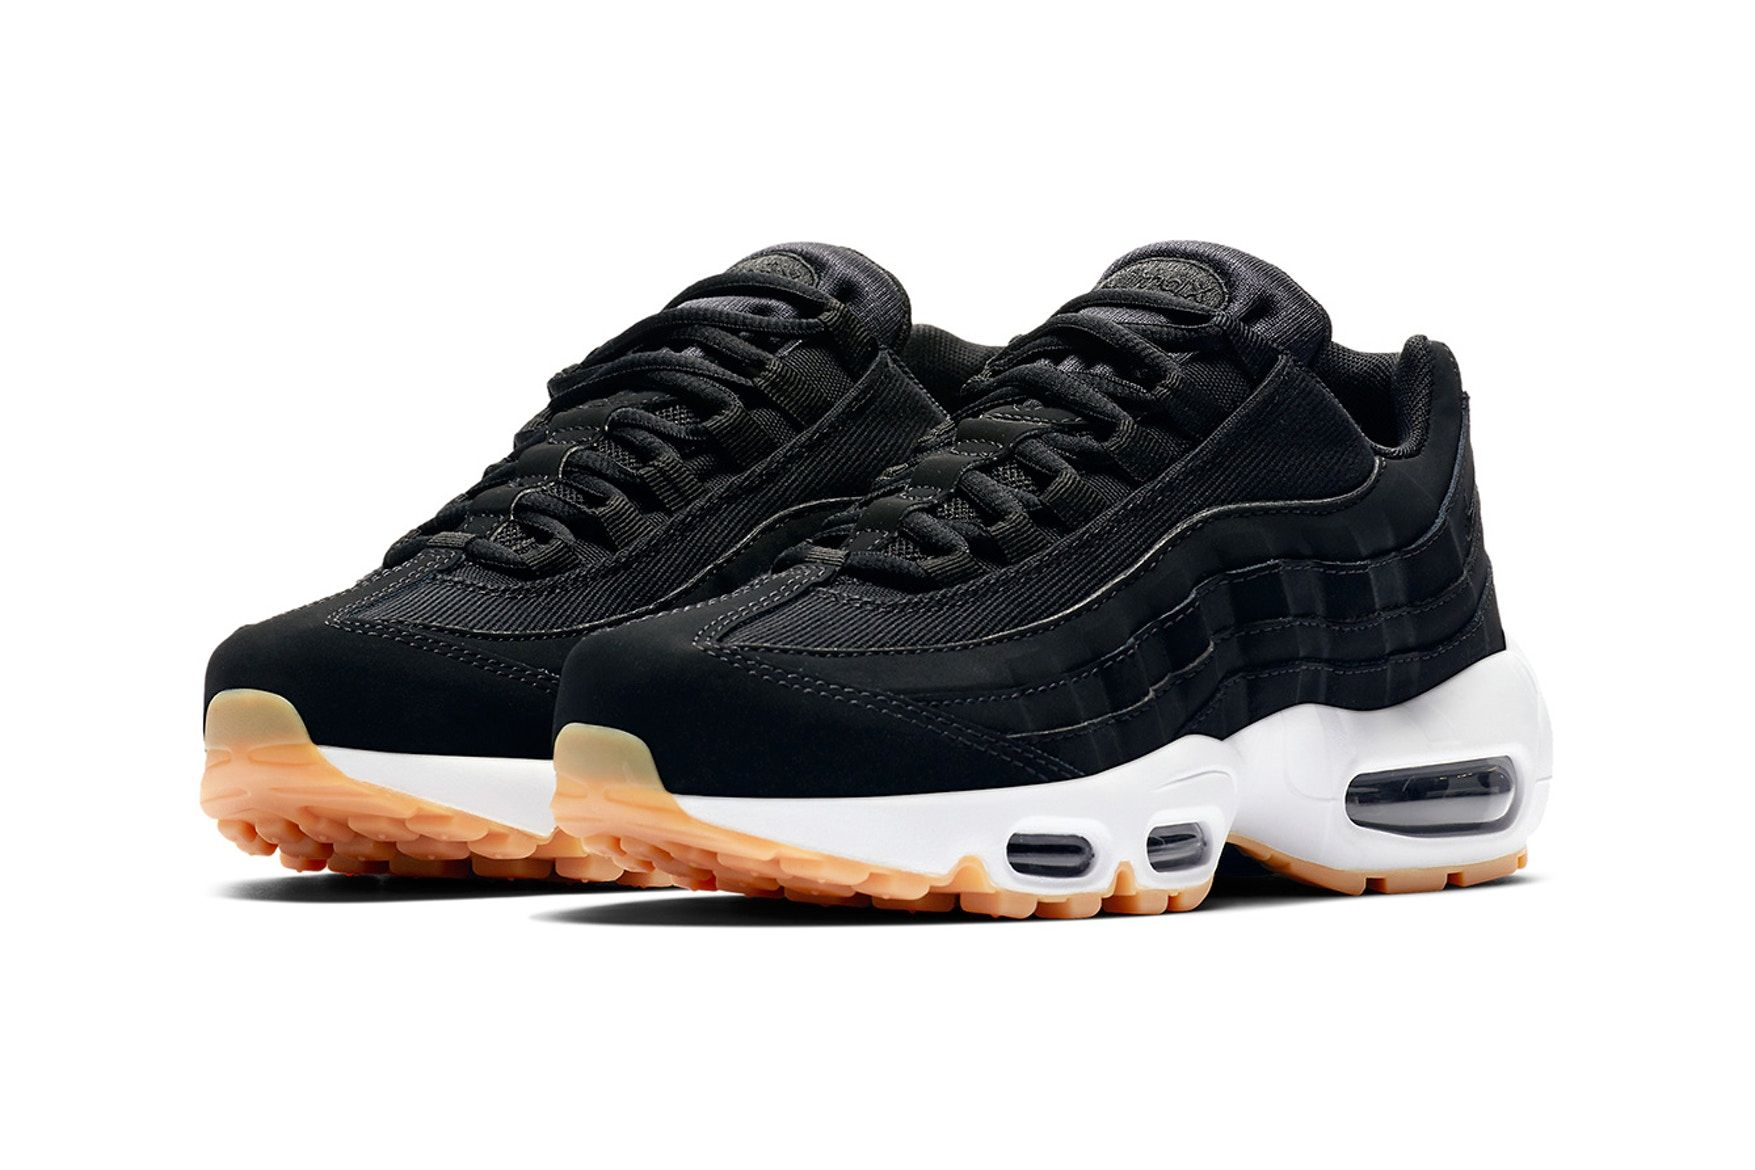 dad69d316fc7 The Nike Air Max 95 Receives a Simple Gum Sole Makeover